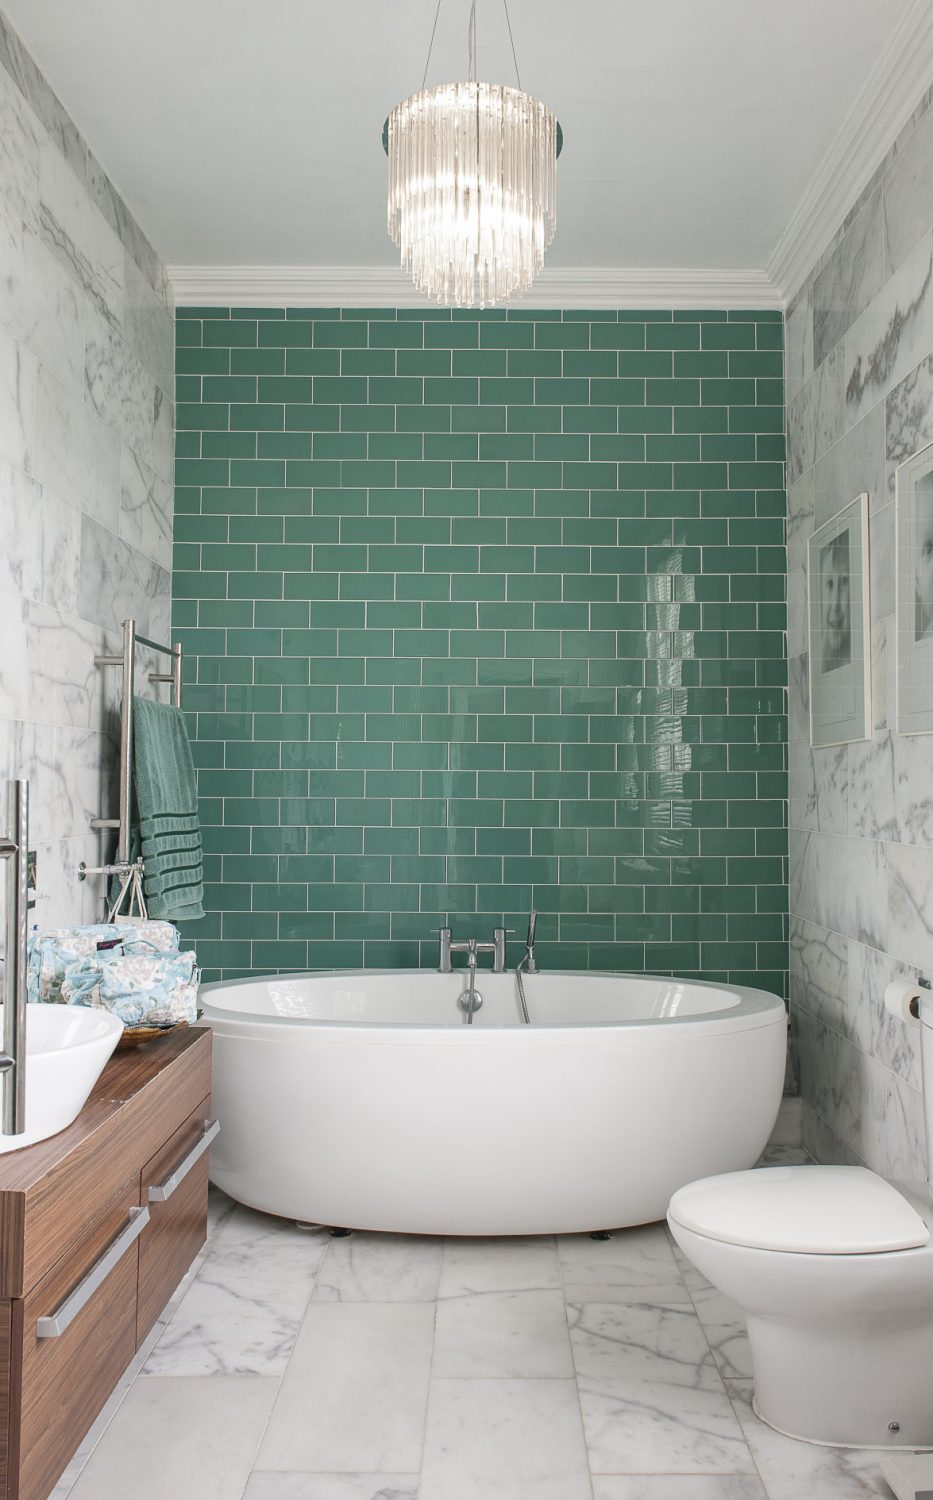 The turquoise-tiled rear wall of Dawn's en suite bathroom is flanked by floor-to-ceiling white marble